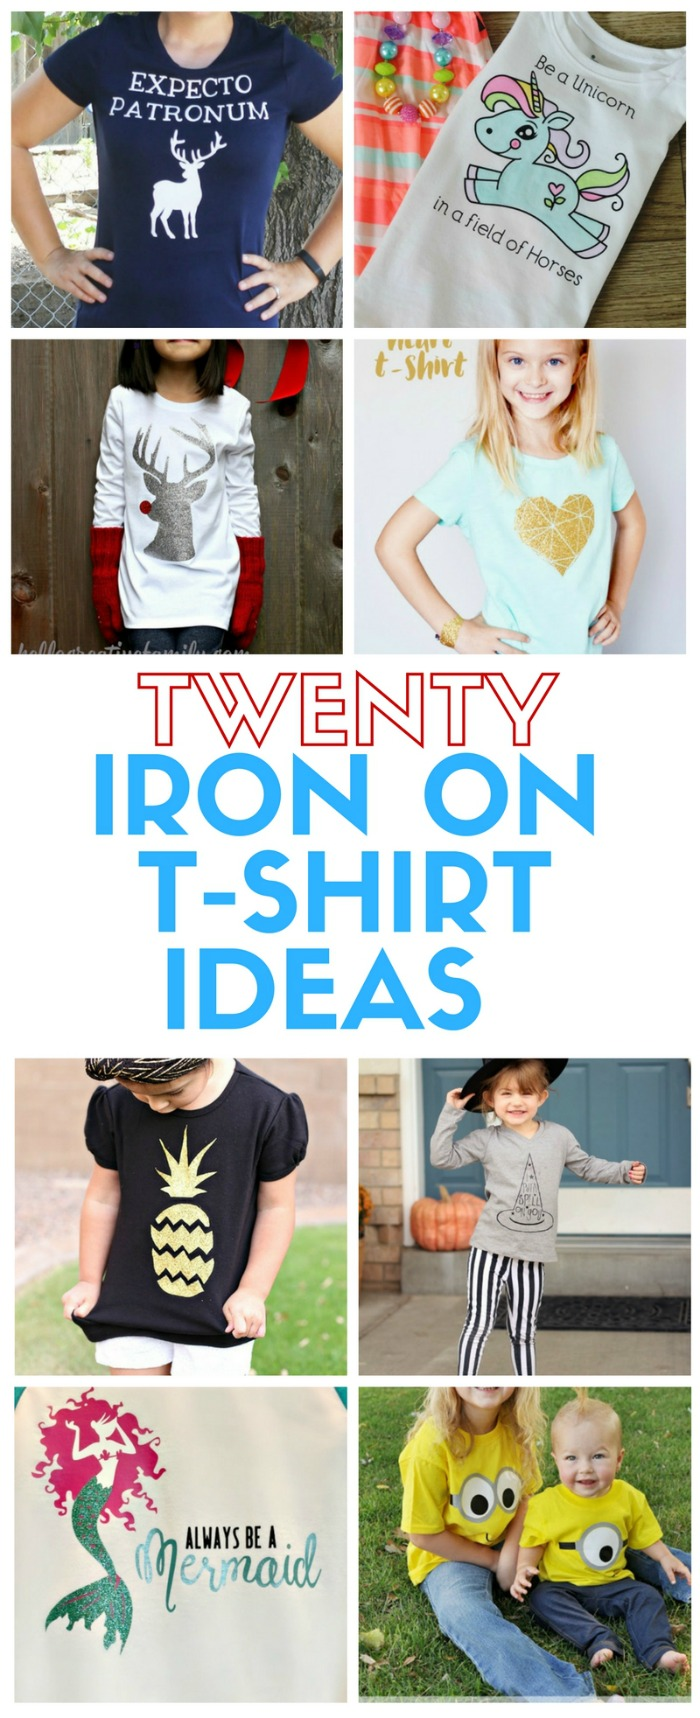 20 T-Shirt ideas using Heat Transfer Vinyl | The Crafty Blog